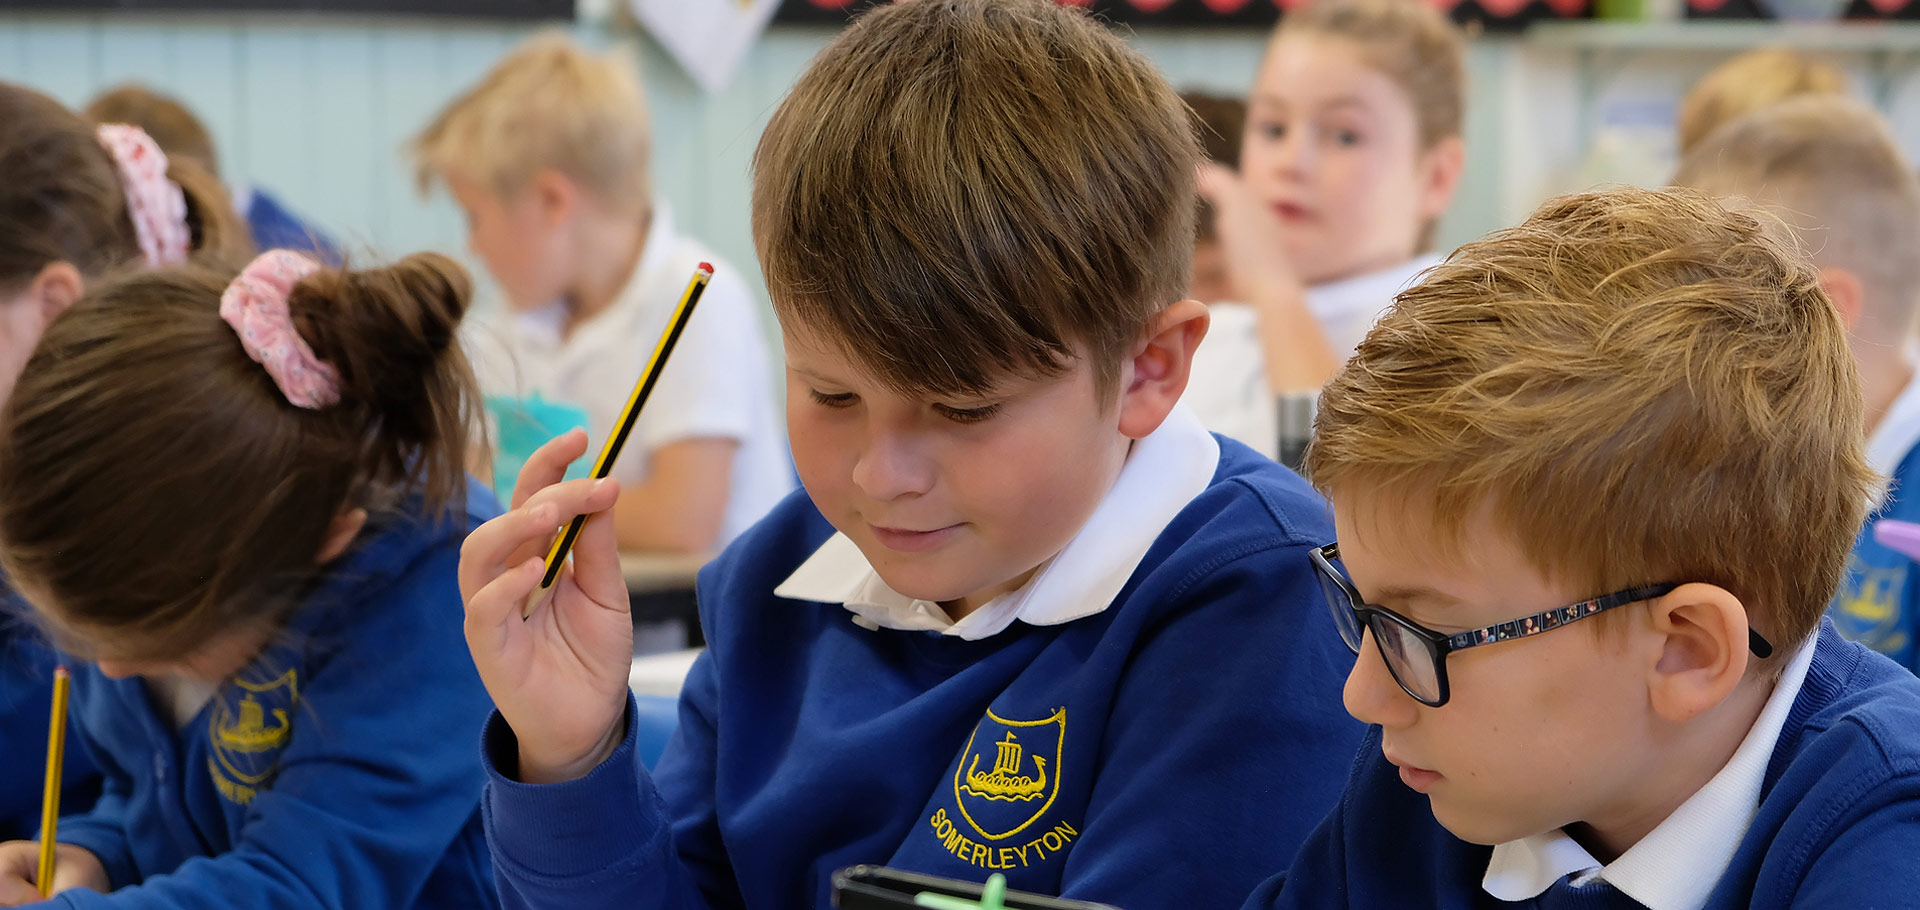 Life at Somerleyton Primary School